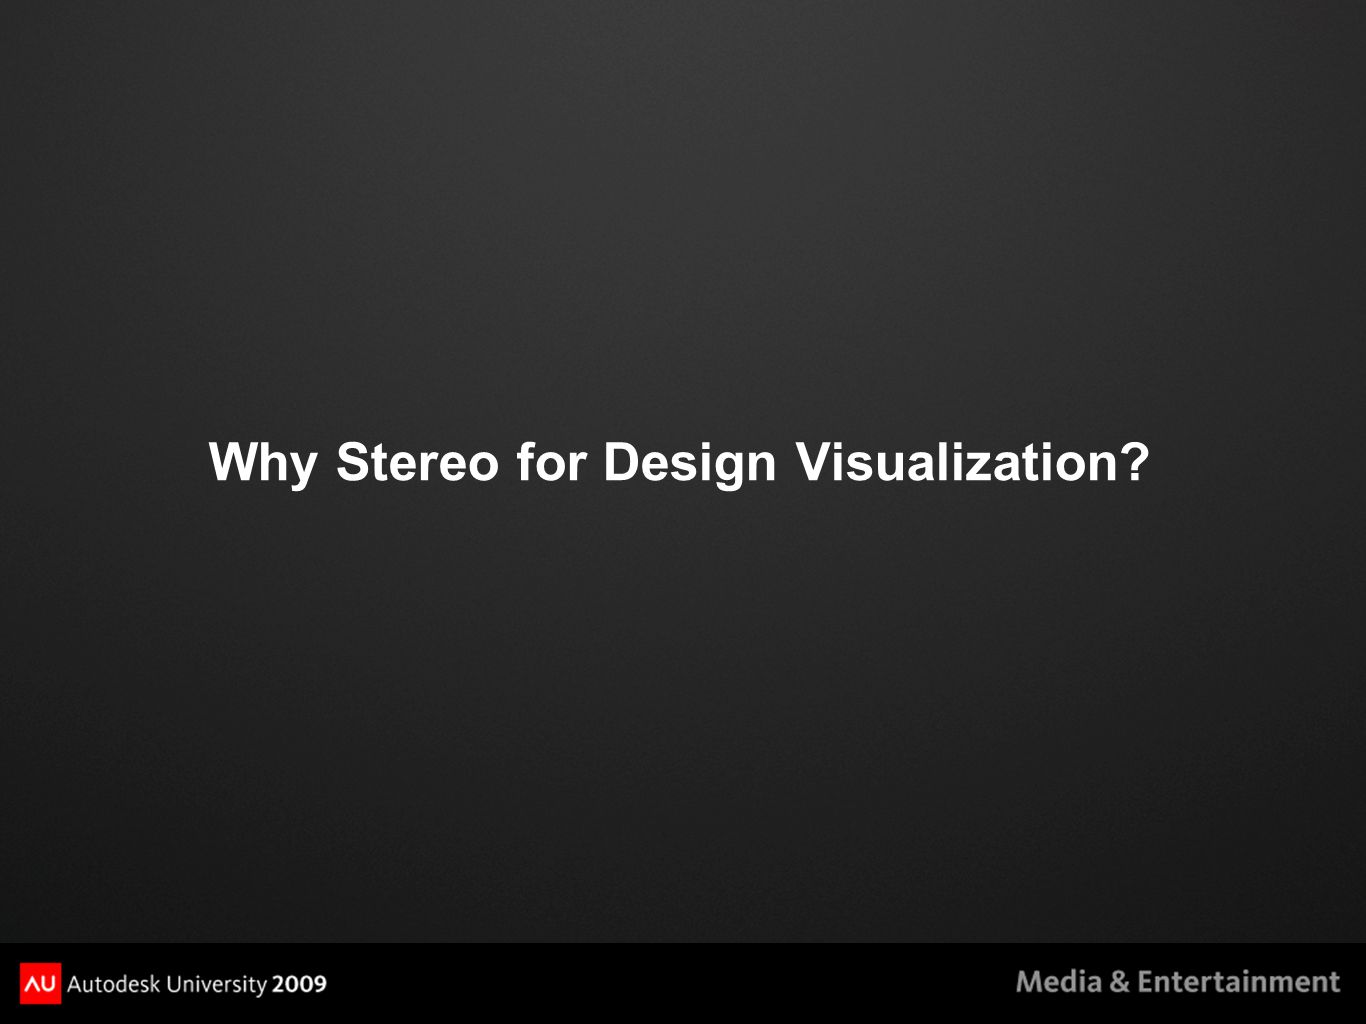 Why Stereo for Design Visualization